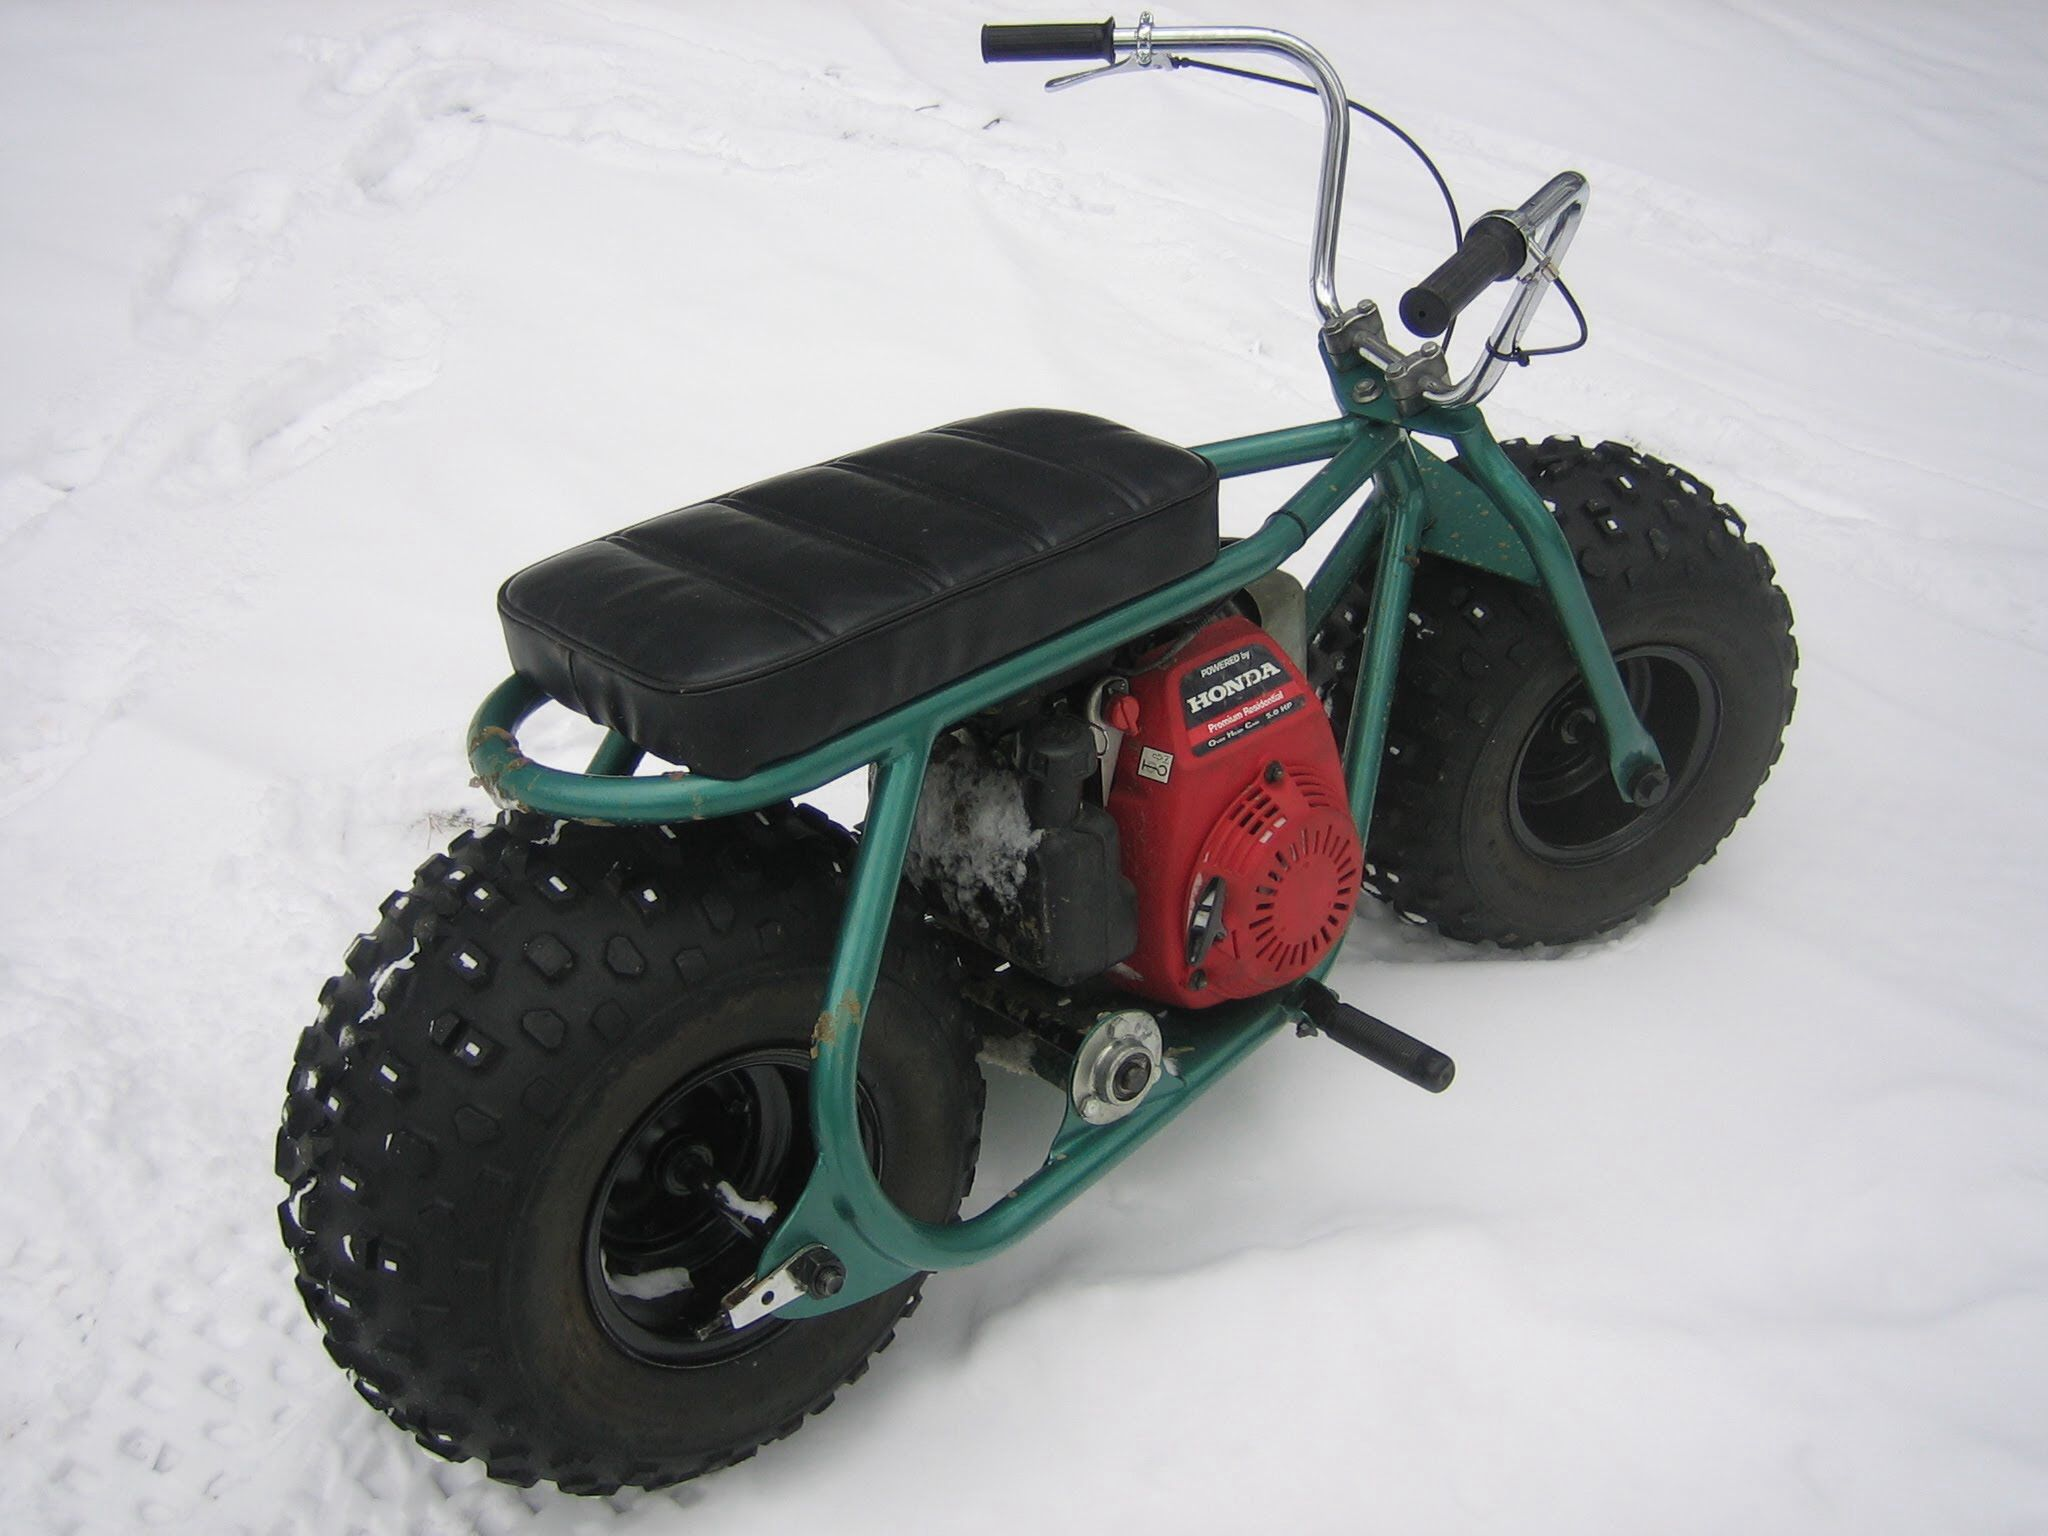 Fat Tire Homemade Custom Minibike In The Snow With Gc160 Honda